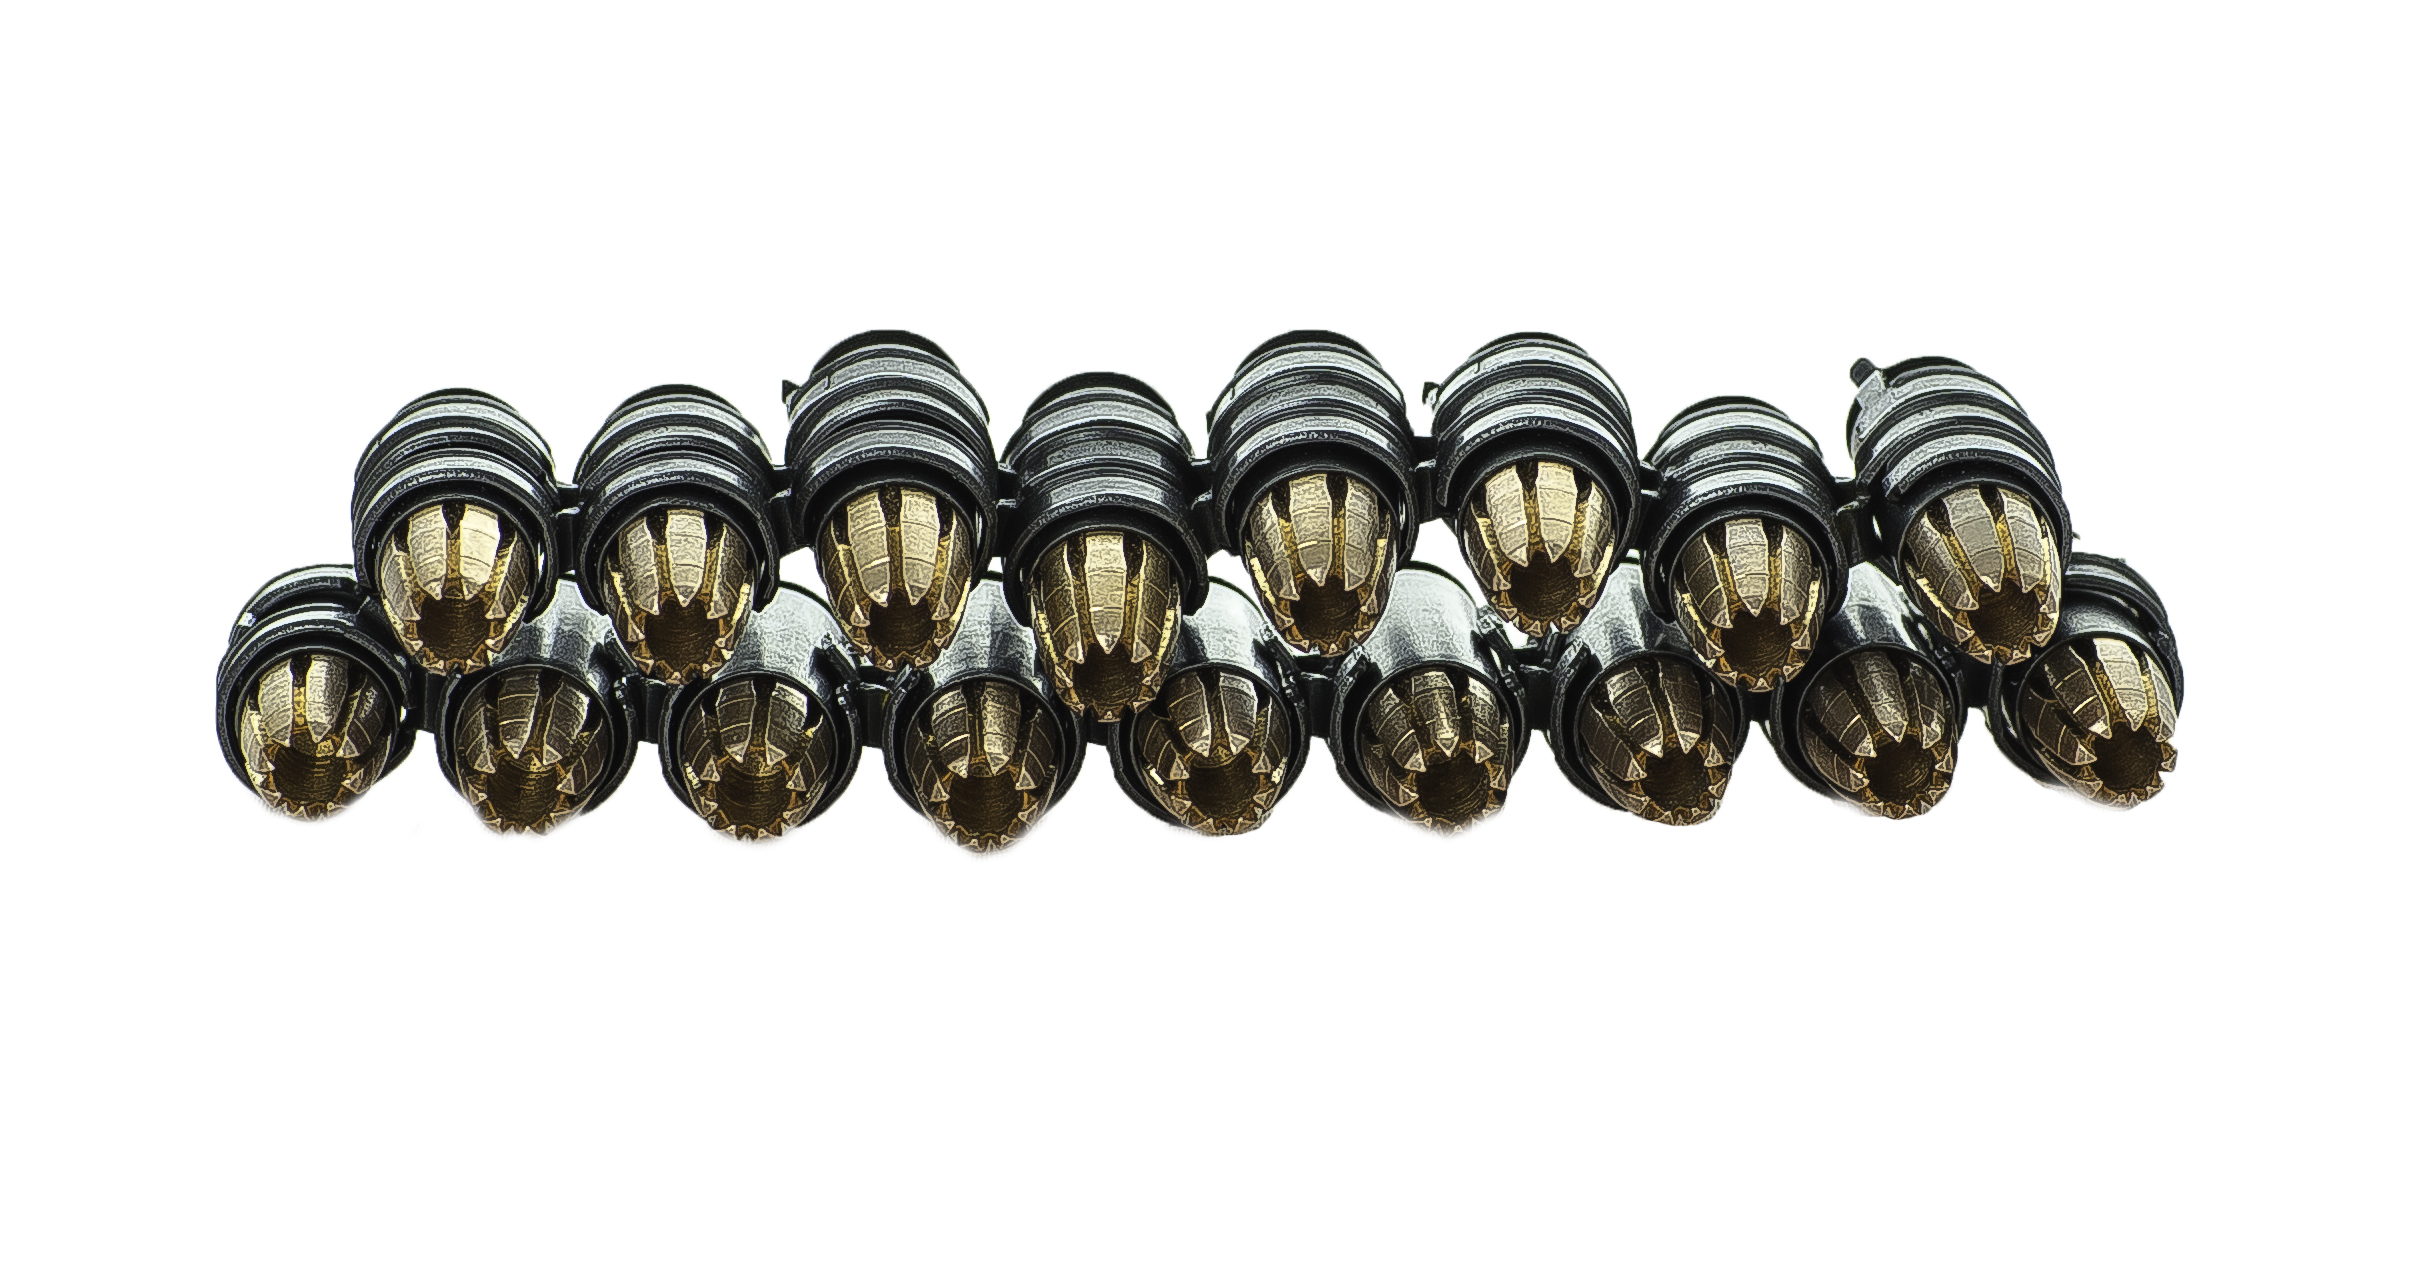 Black on Black 9mm linked bullet bracelet with RIP solid copper machined lead free hollow point projectiles